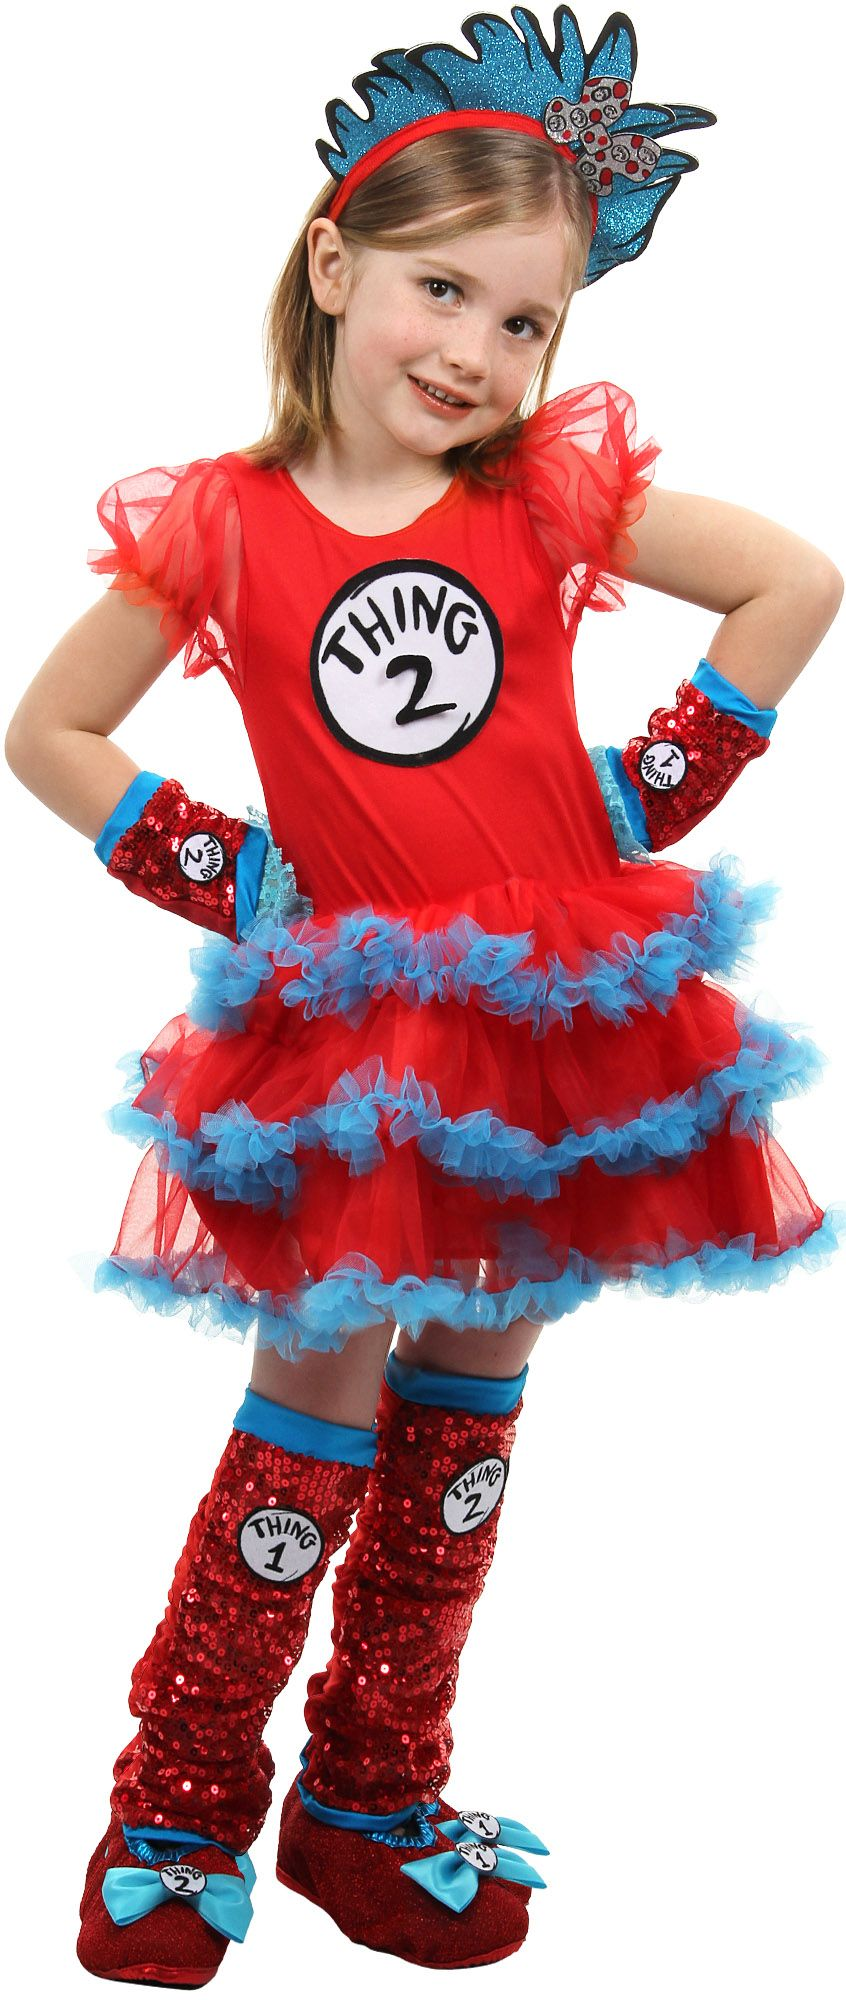 girl thing 1 and thing 2 create your look